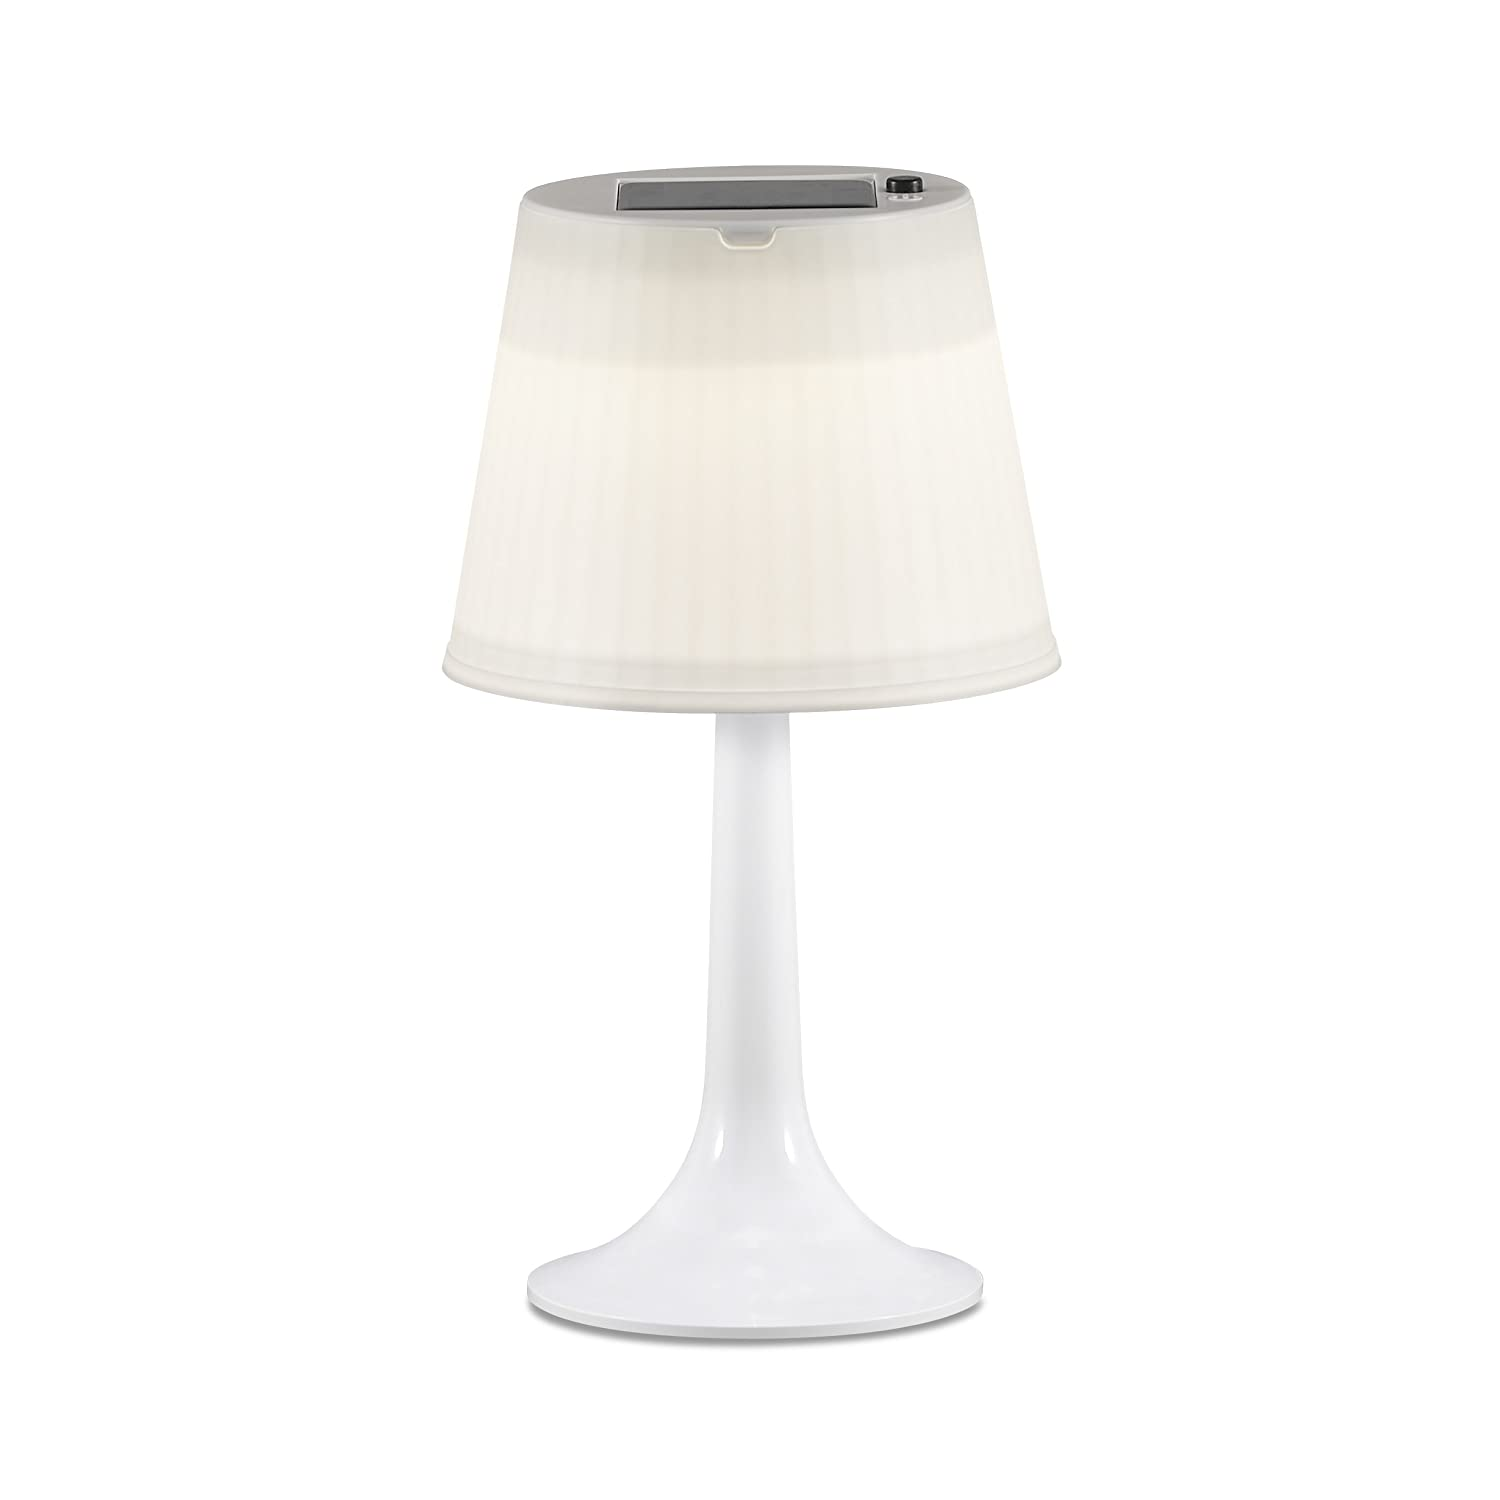 Konstsmide Assisi Solar LED Table Lamp - White 7109-202